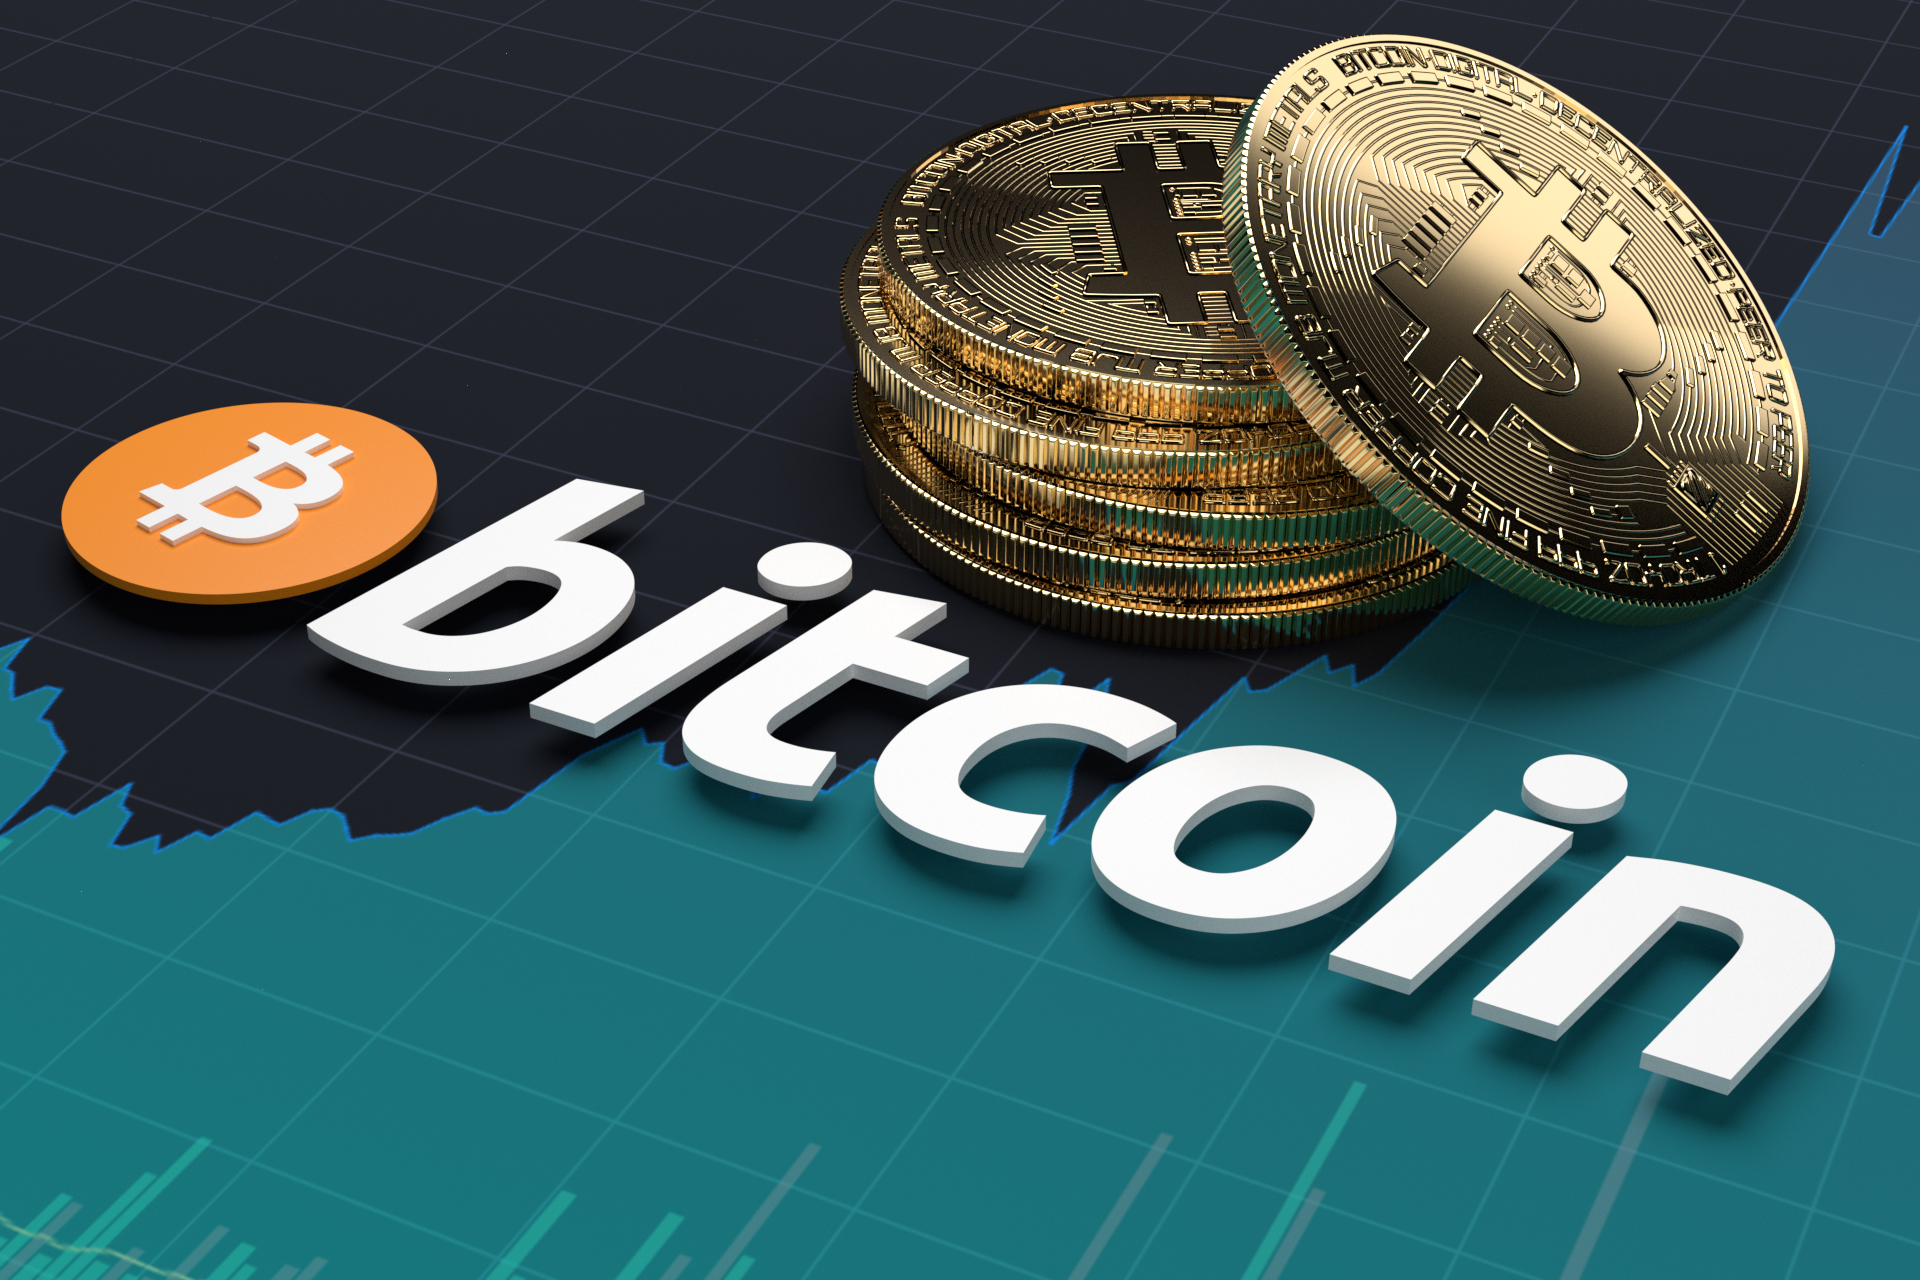 What causes volatility in bitcoin